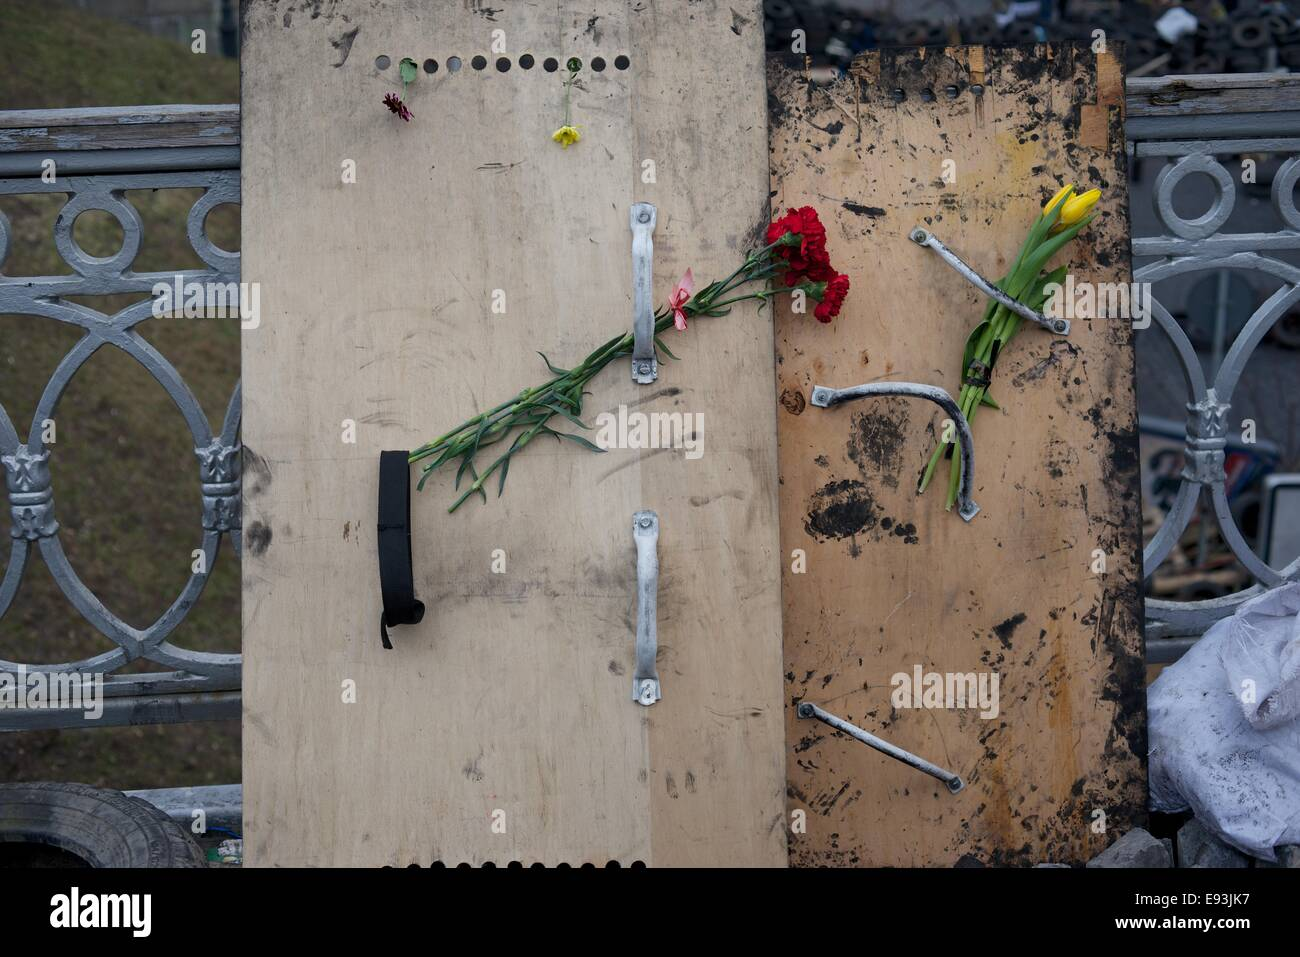 Flowers placed, in memory of the dead, on riot shields used by Maidan protesters, Kiev - Stock Image